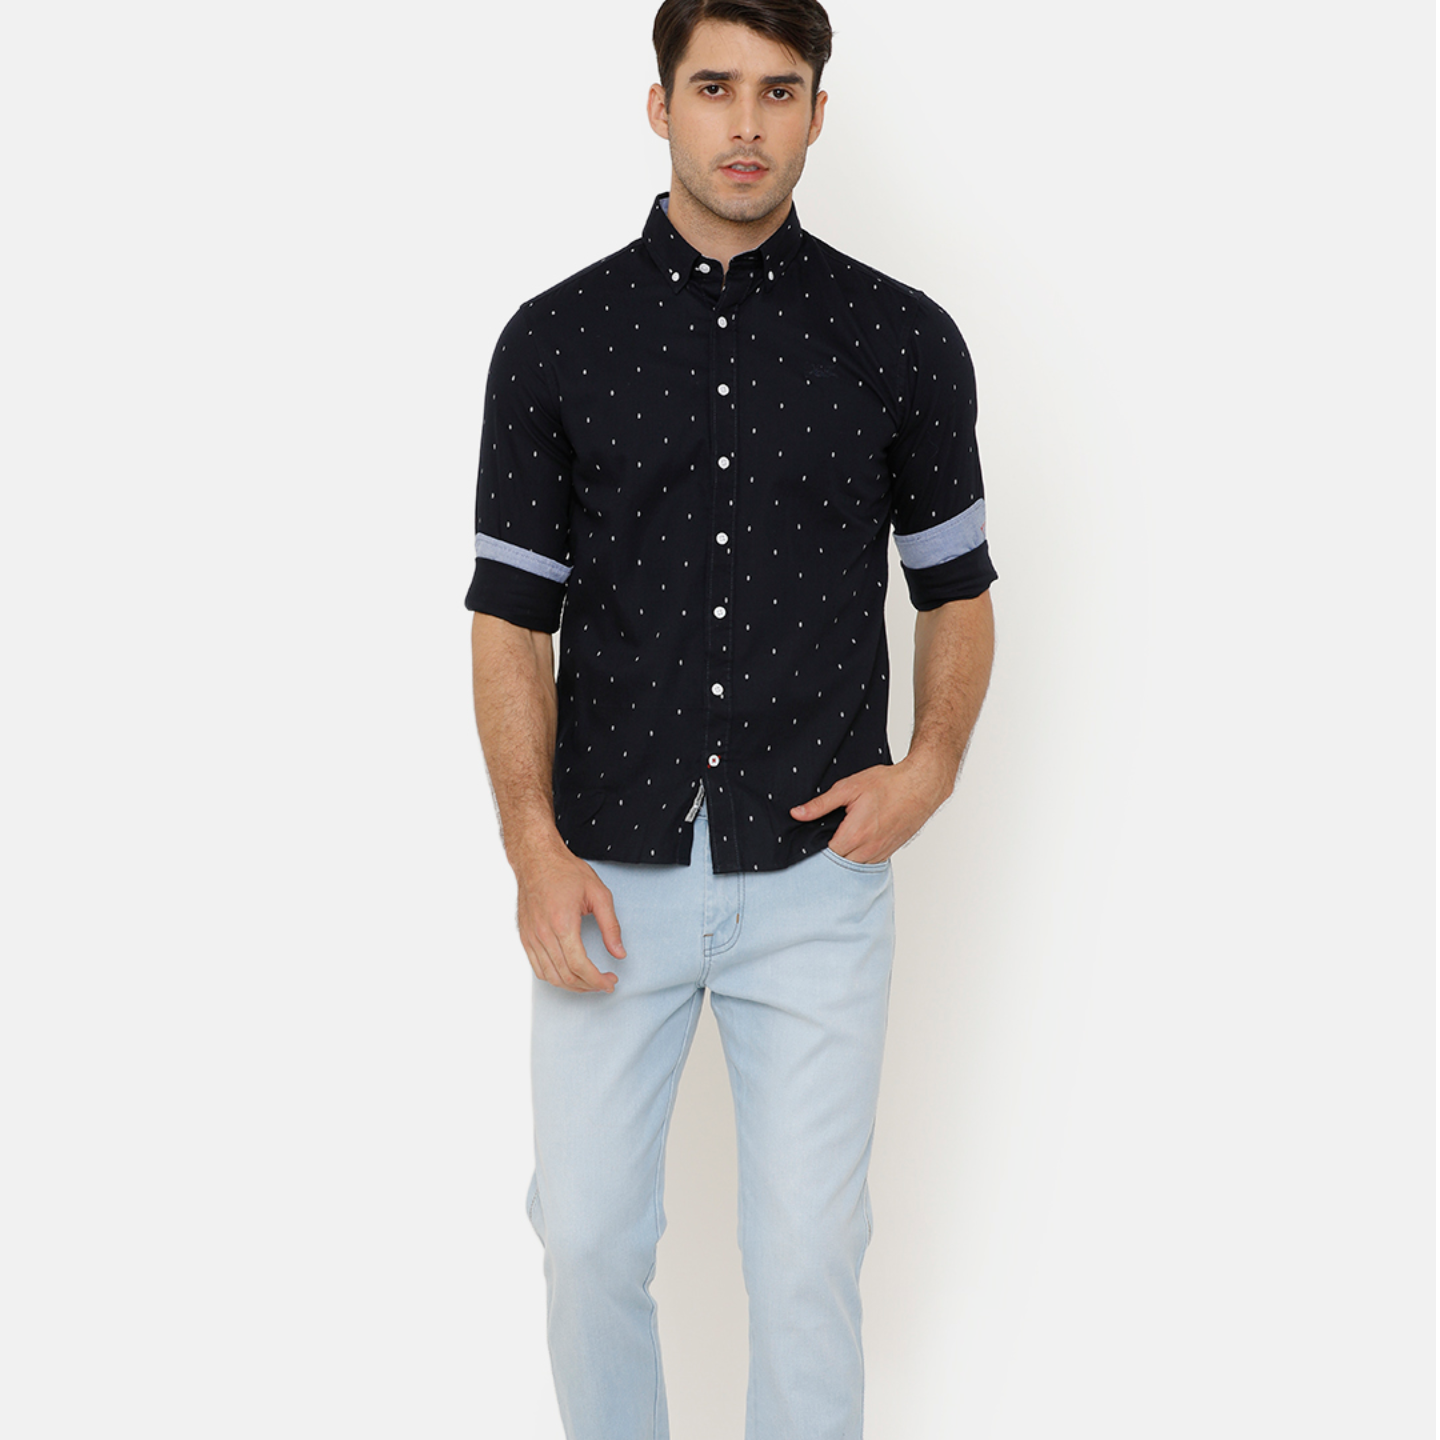 Bar Harbour Navy Blue Printed Casual Shirt